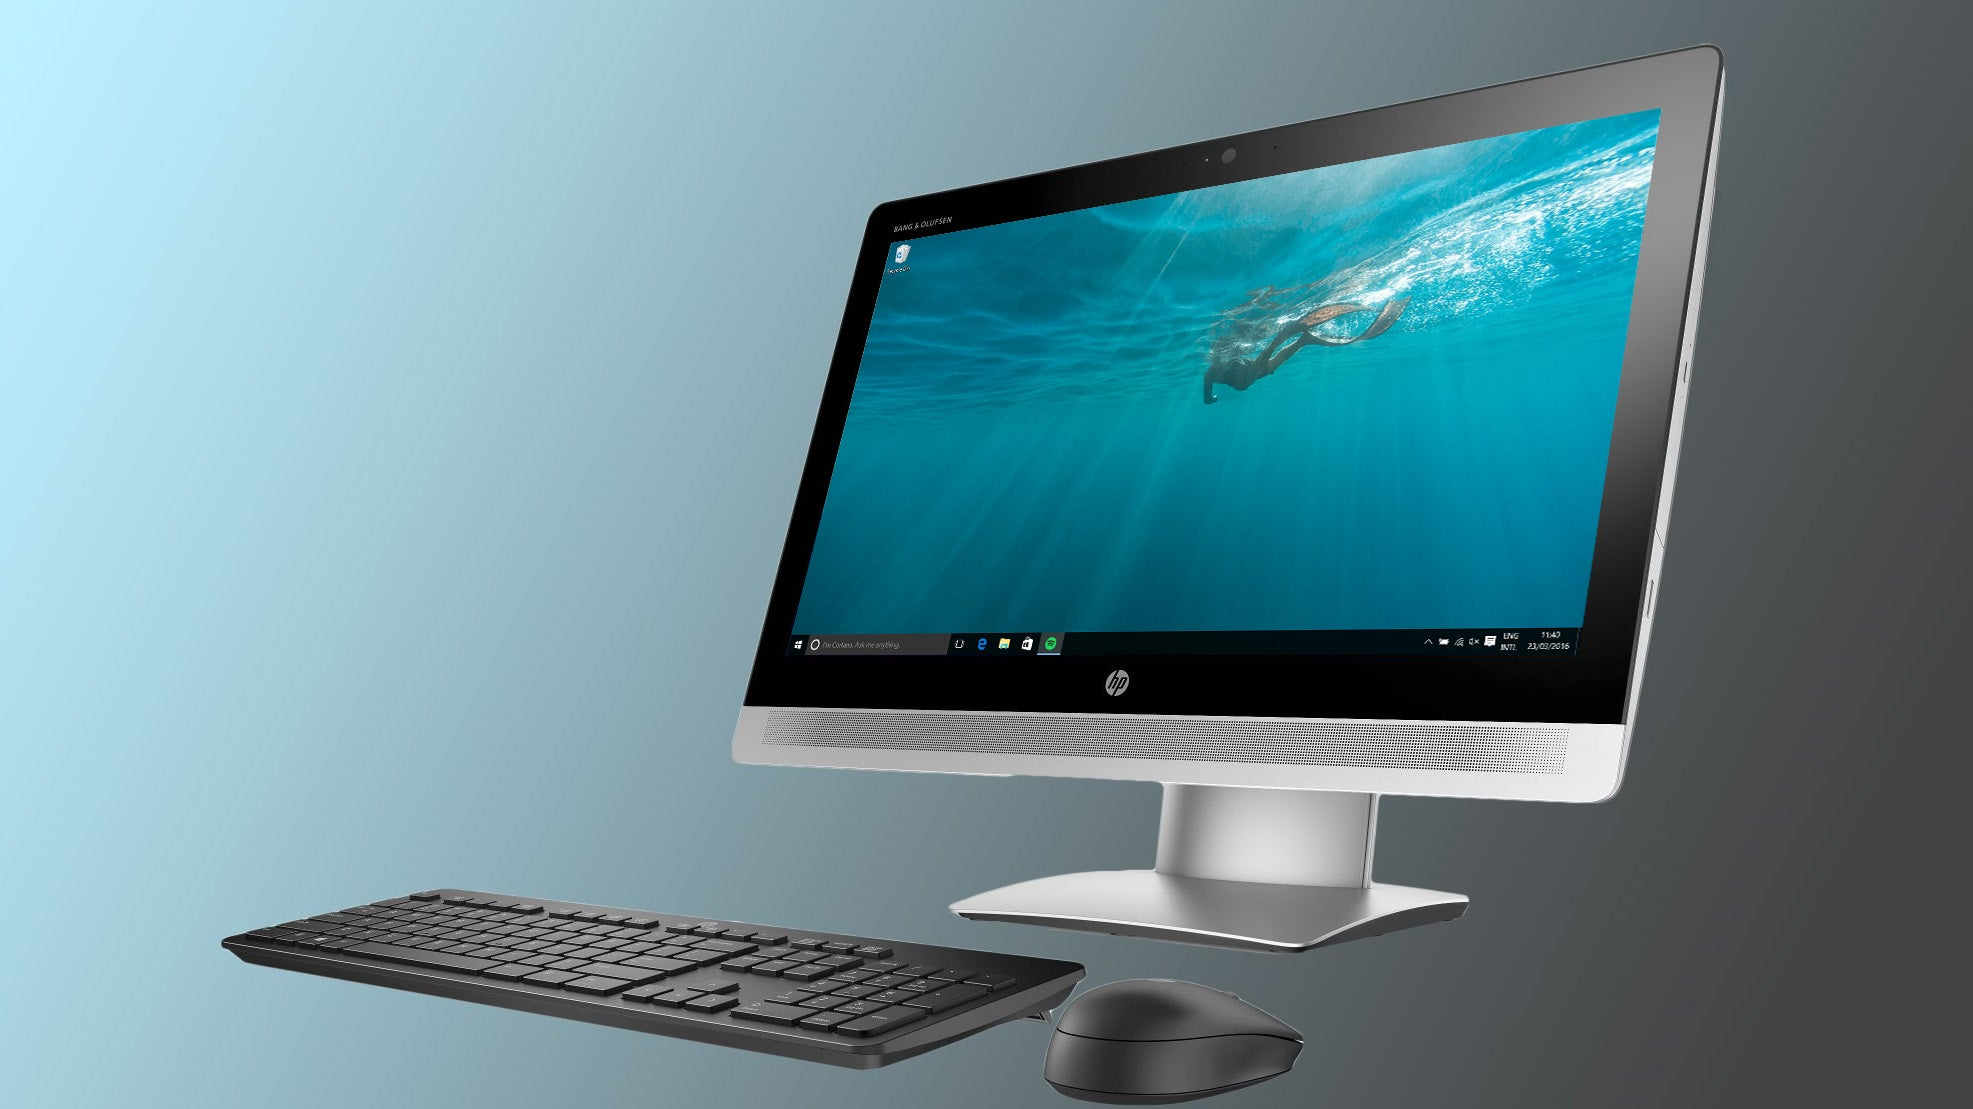 Hp Eliteone 800 G2 Review Trusted Reviews